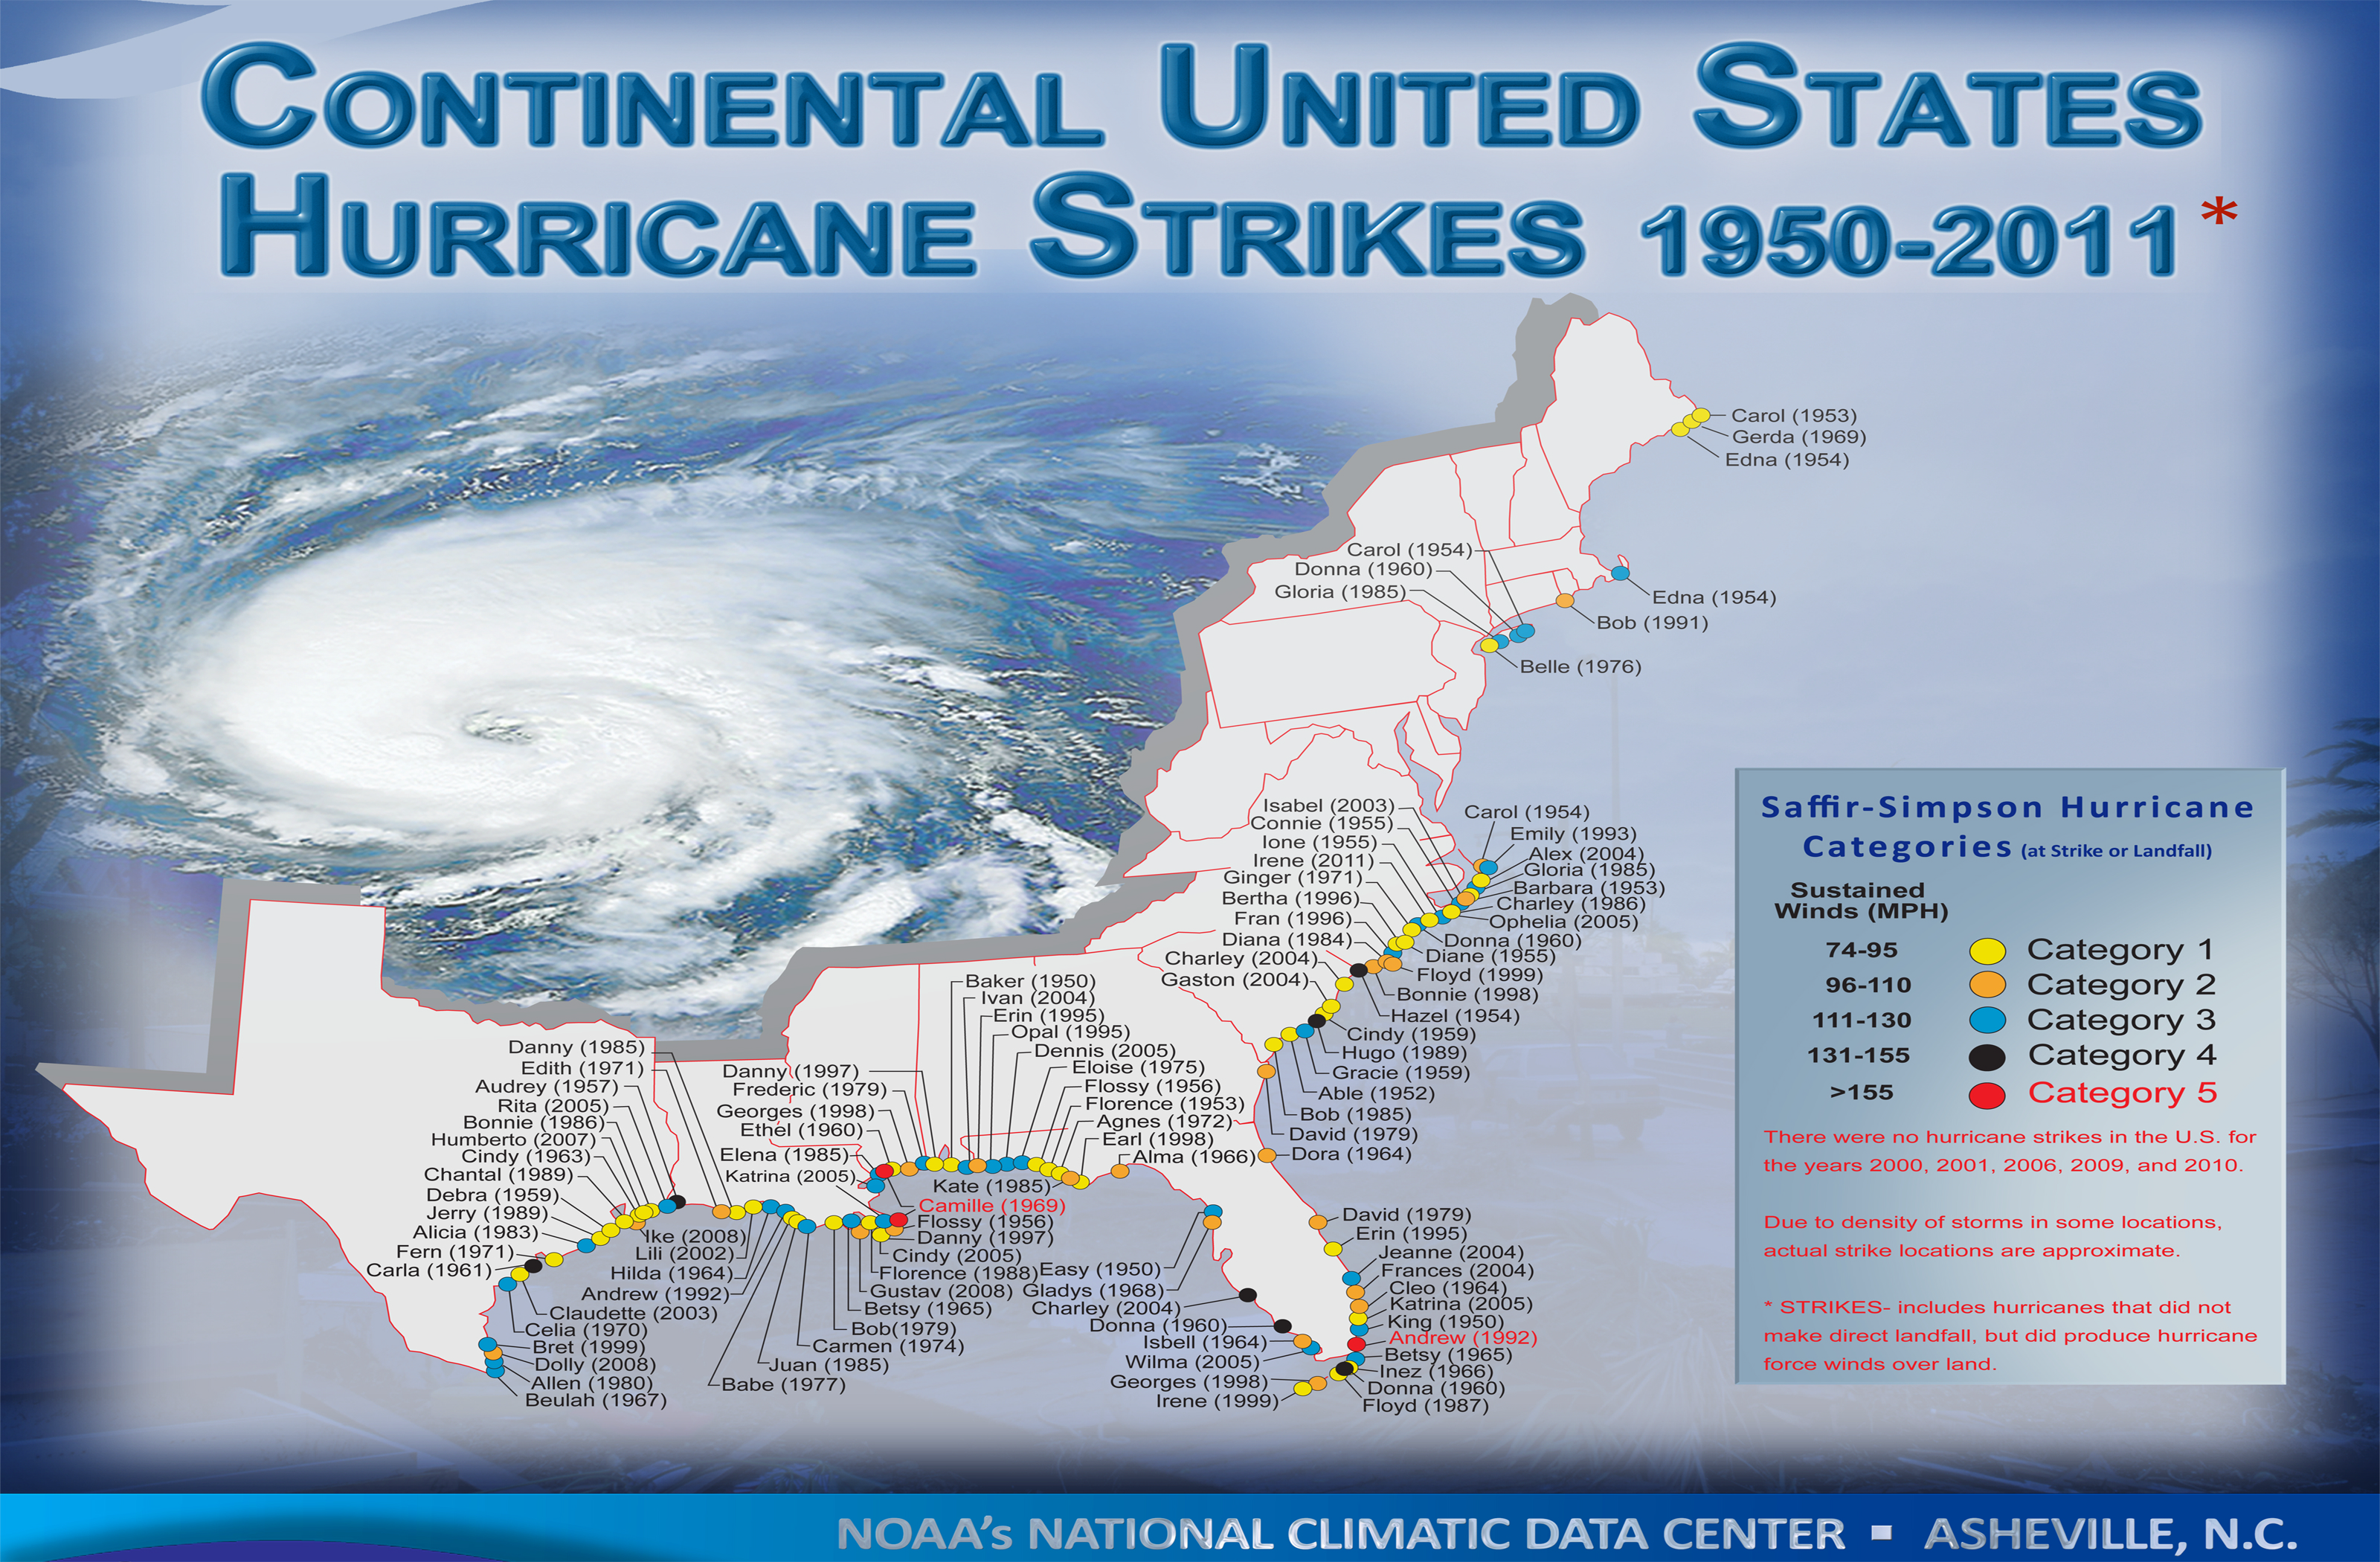 Different Hurricane Categories